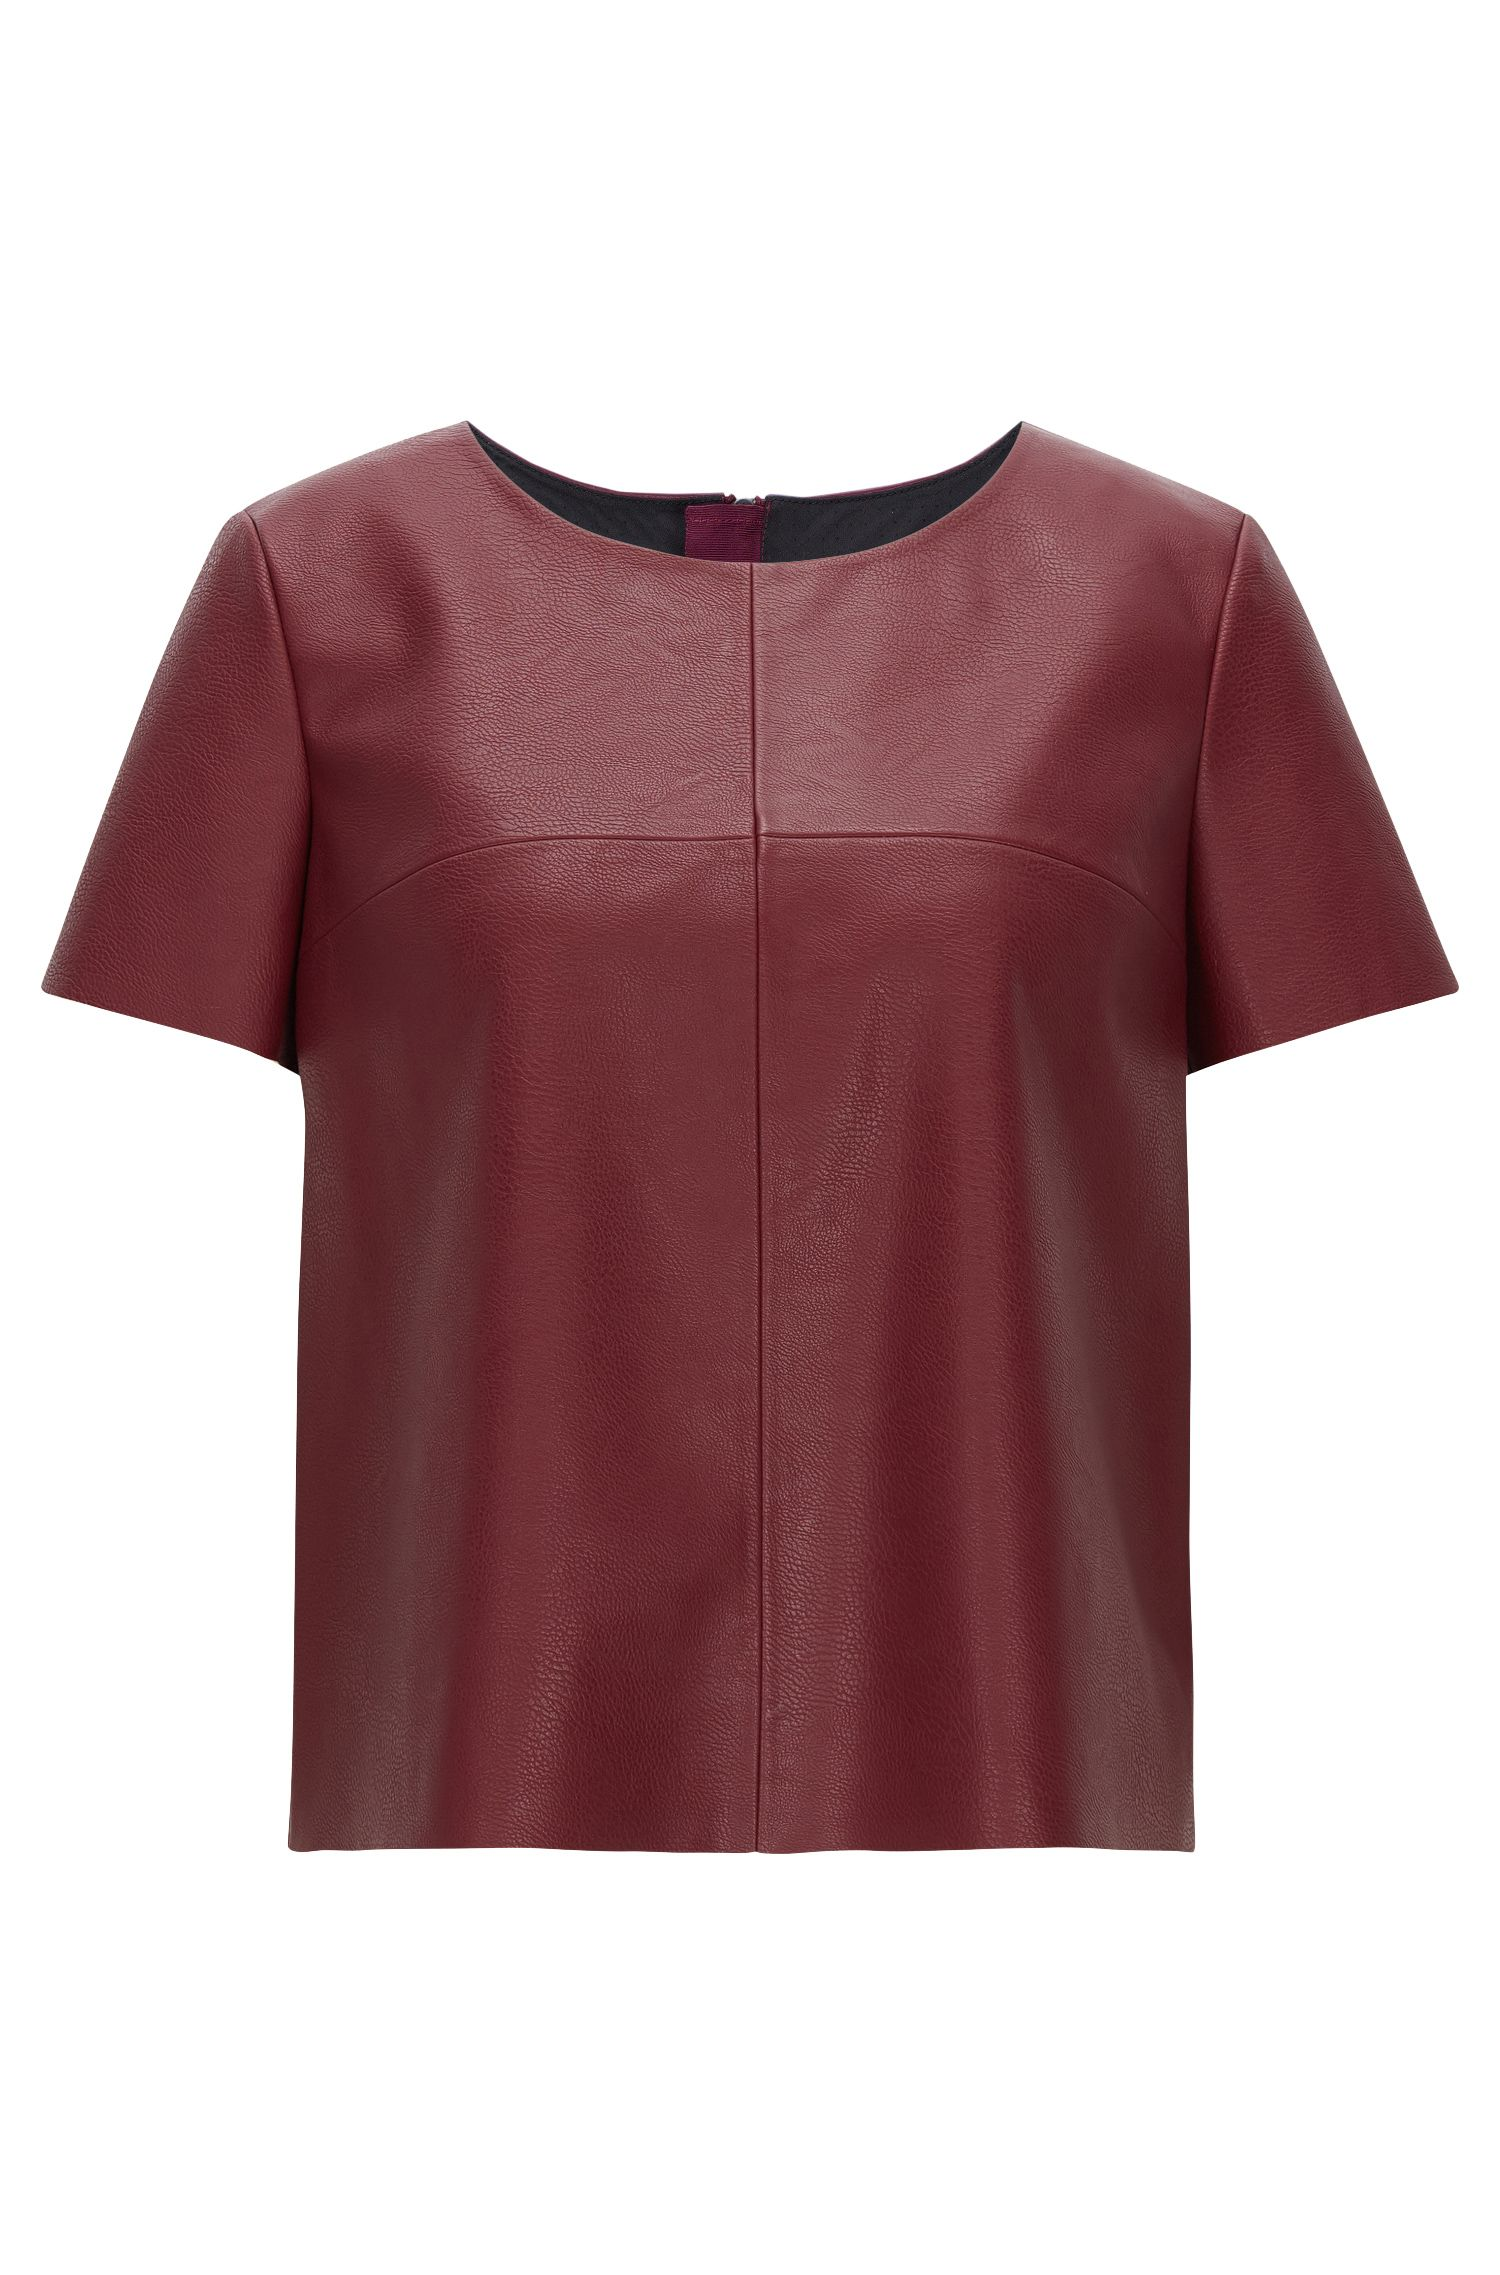 'Kaledy' | Faux Leather Top